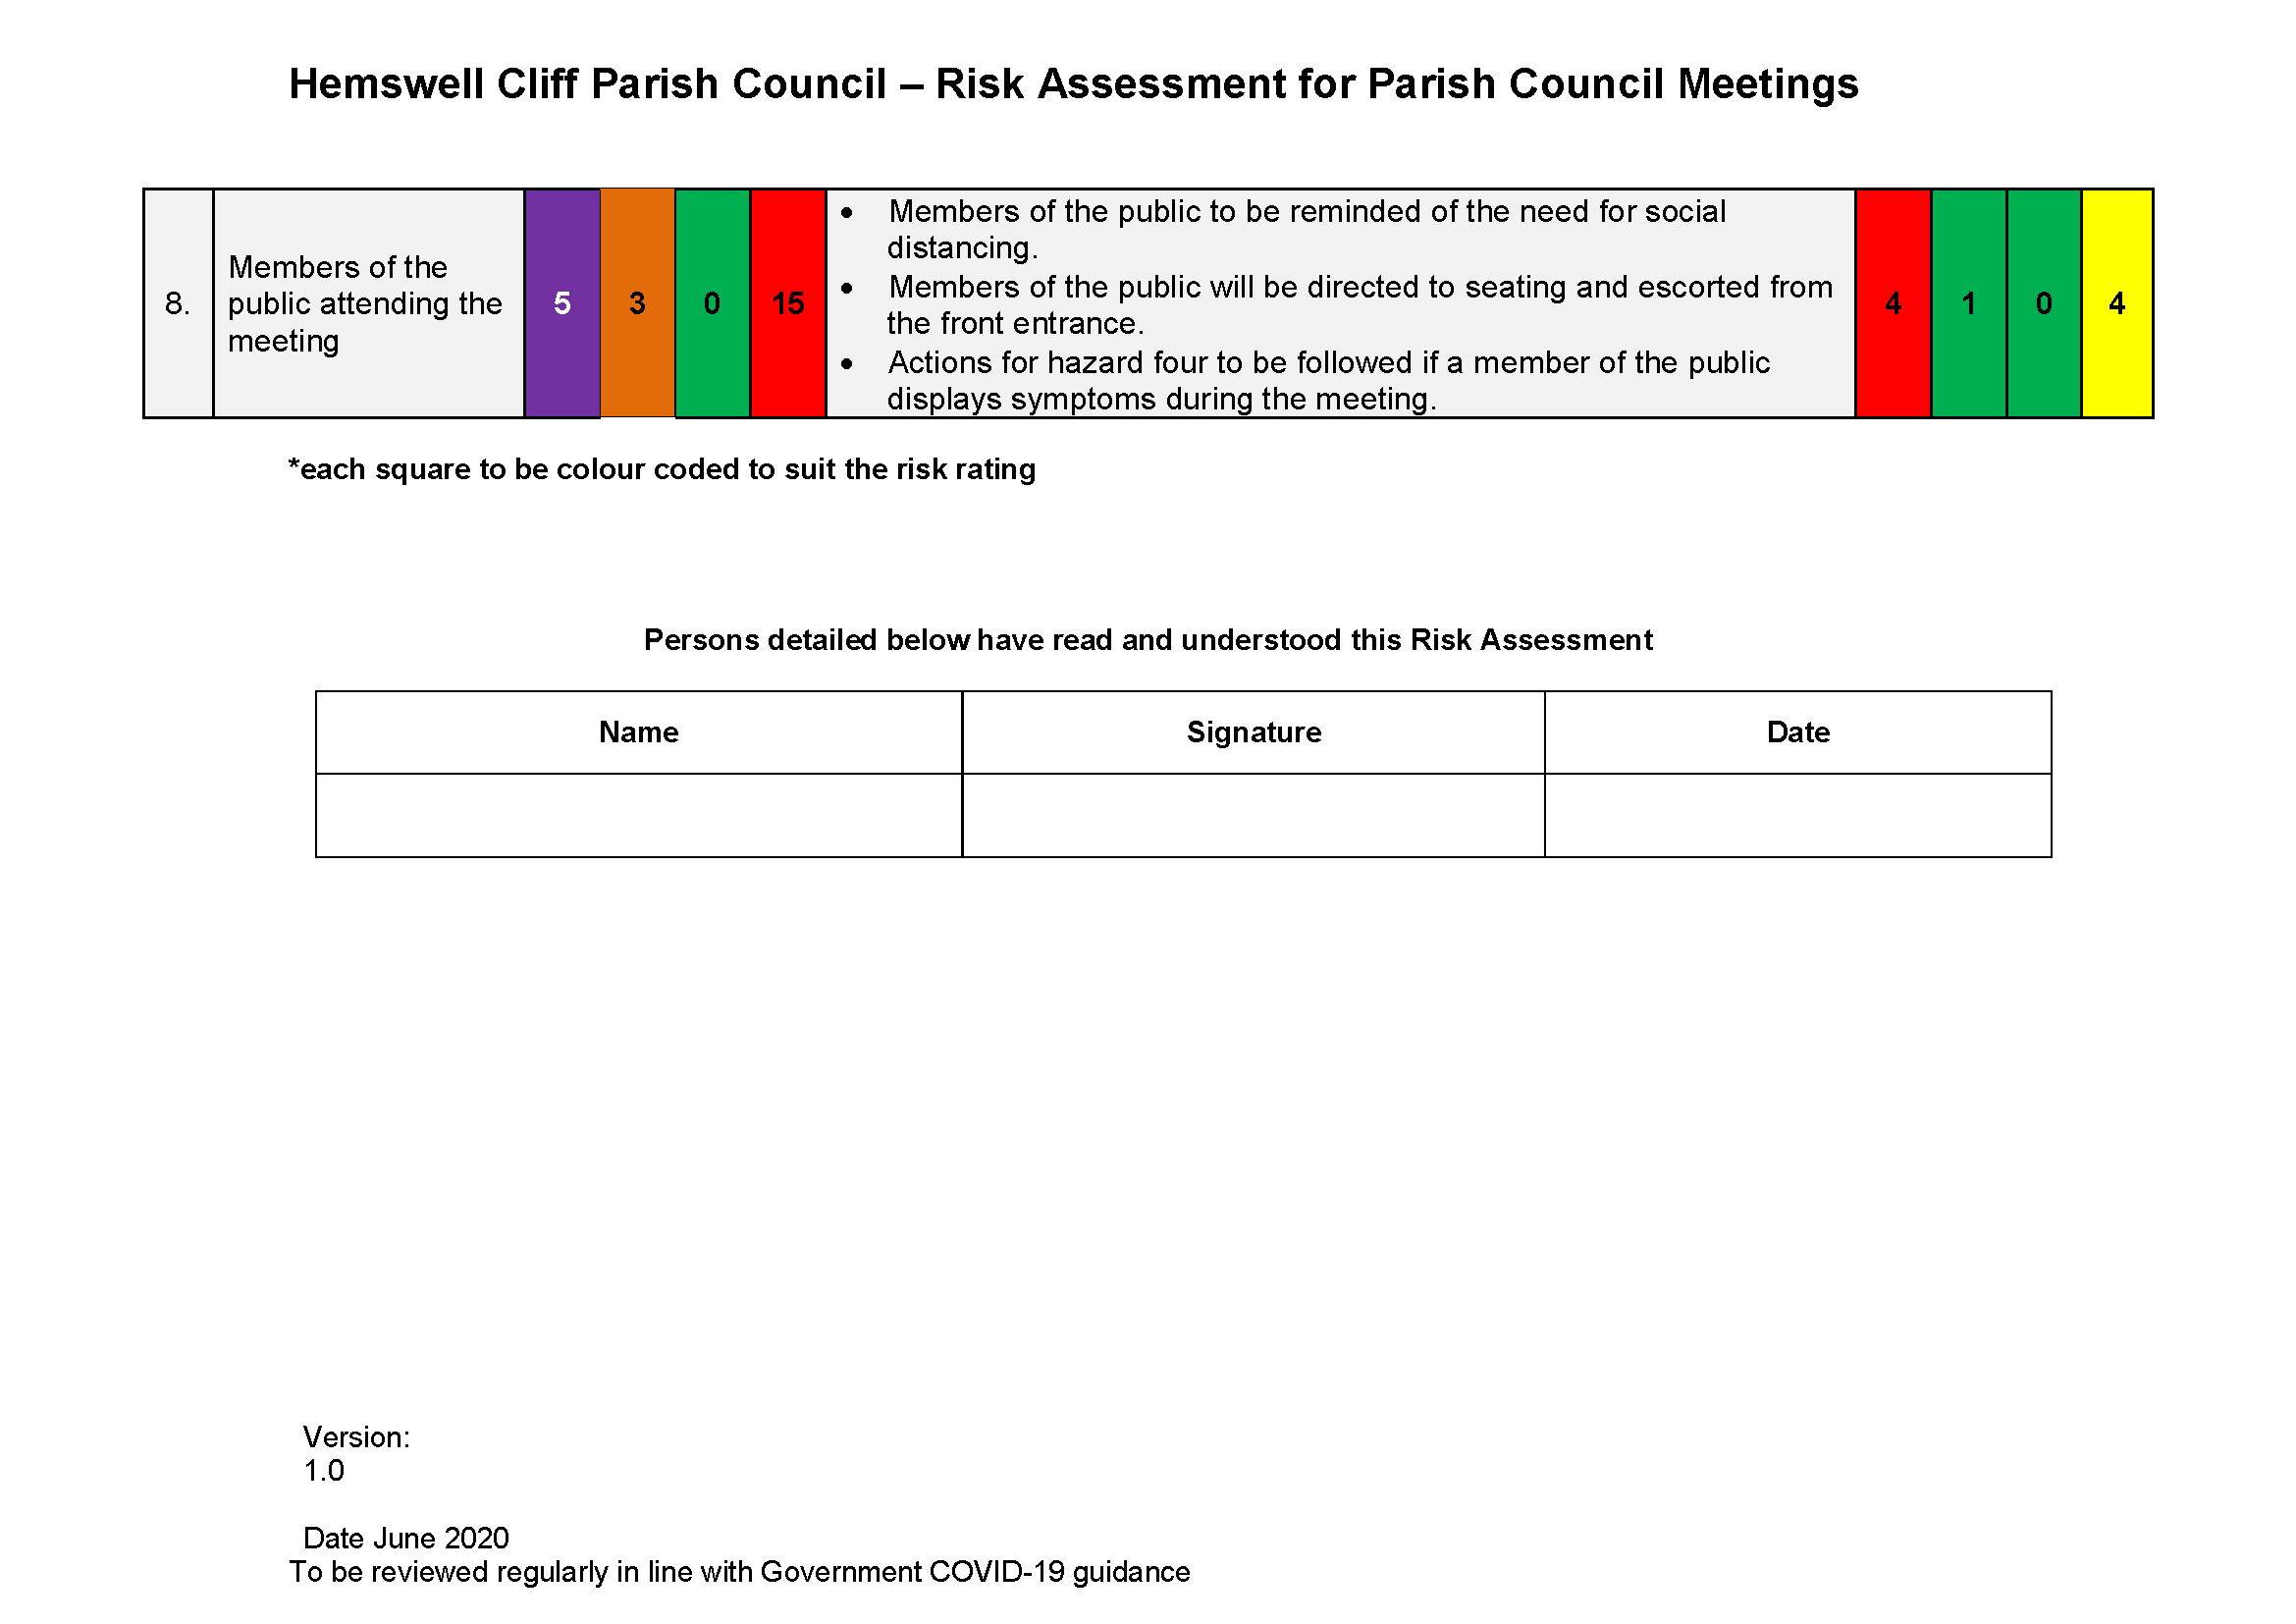 HCPC_risk_assessment_meetings_Page_4.png